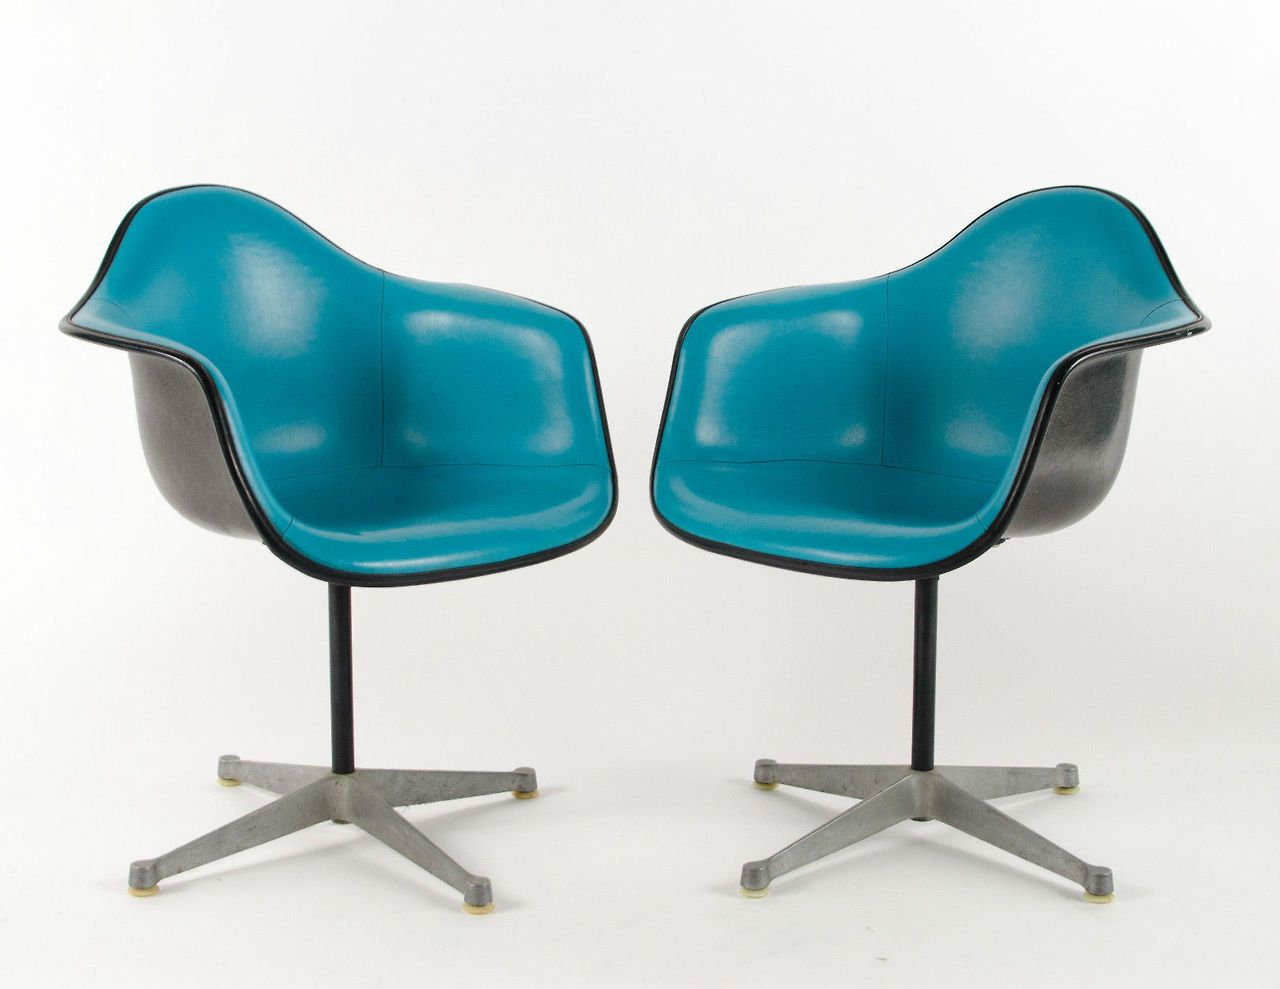 Charles Eames Herman Miller PAC Turquoise Arm Shell Chairs S - Henry miller furniture